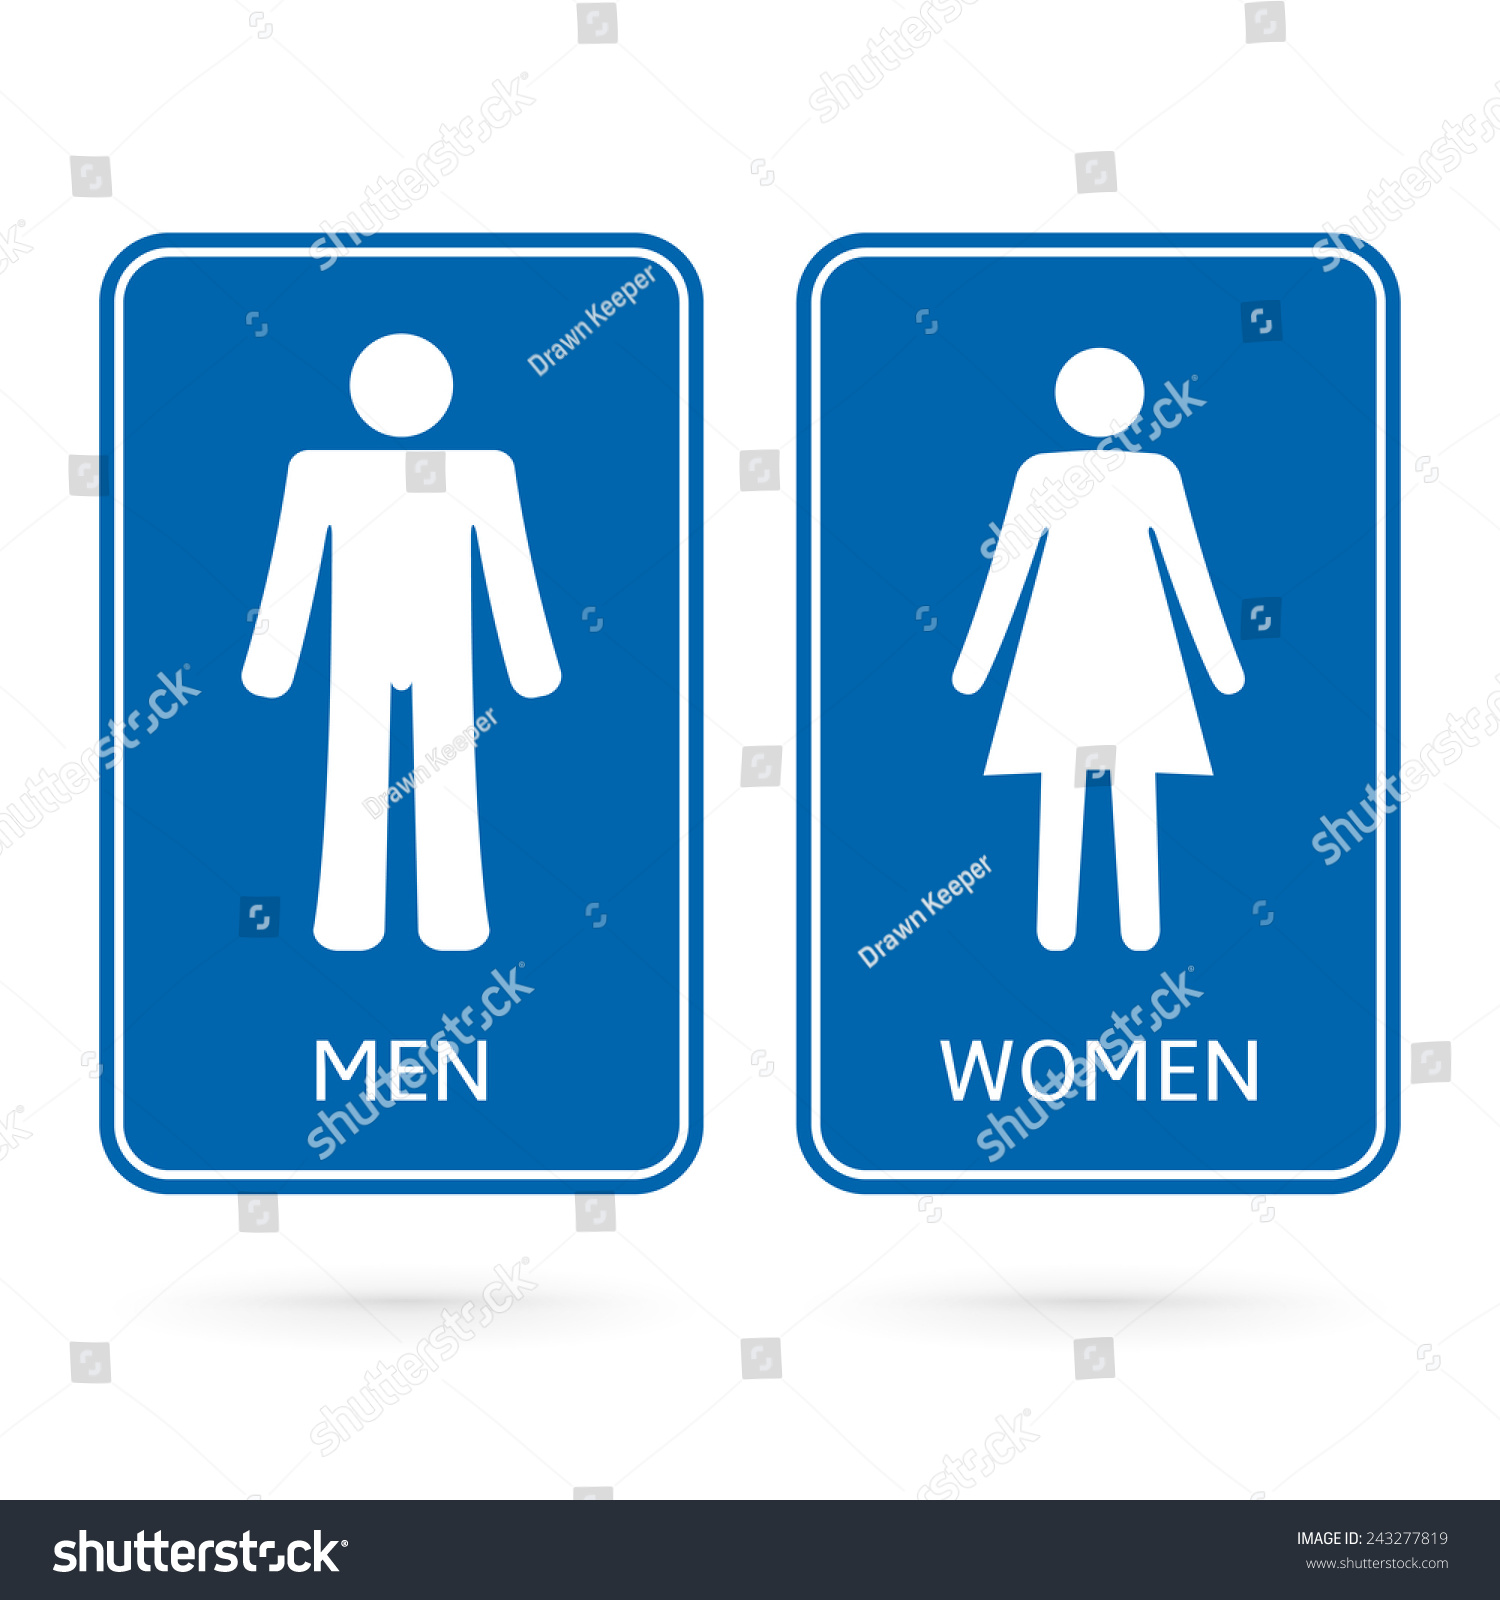 Man Woman Blue Signs Made For Gender Identification Of Restroom Or